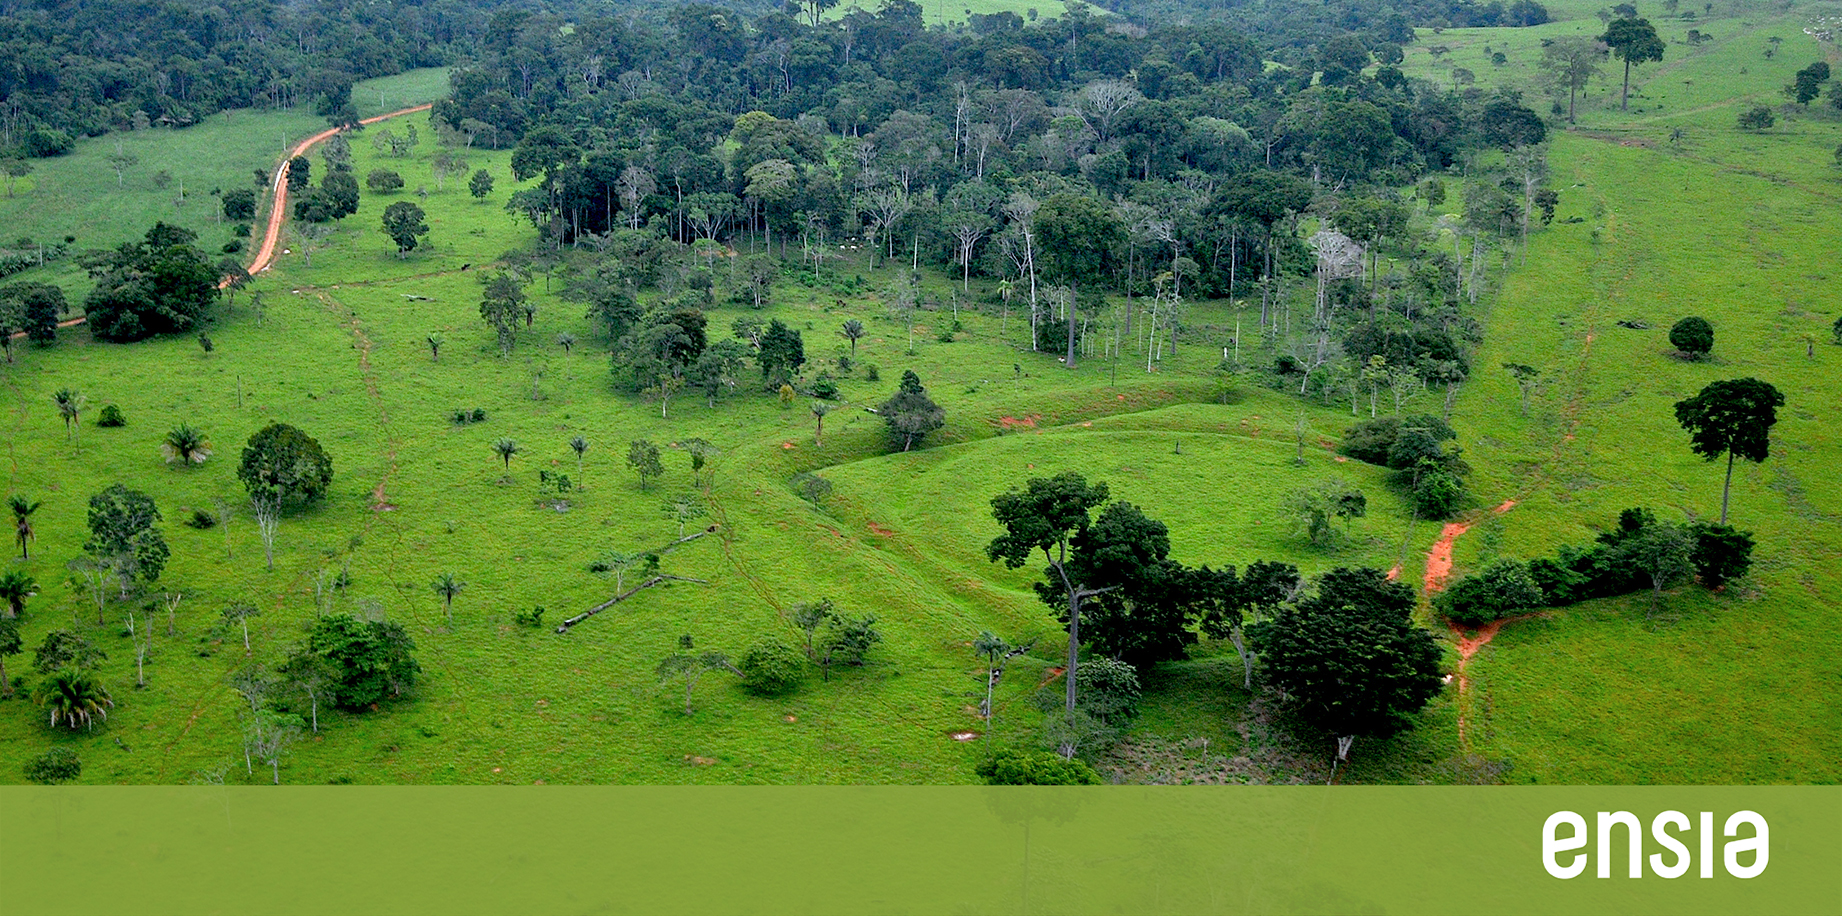 Sustainable farming lessons from the Amazon's ancient inhabitants | Ensia